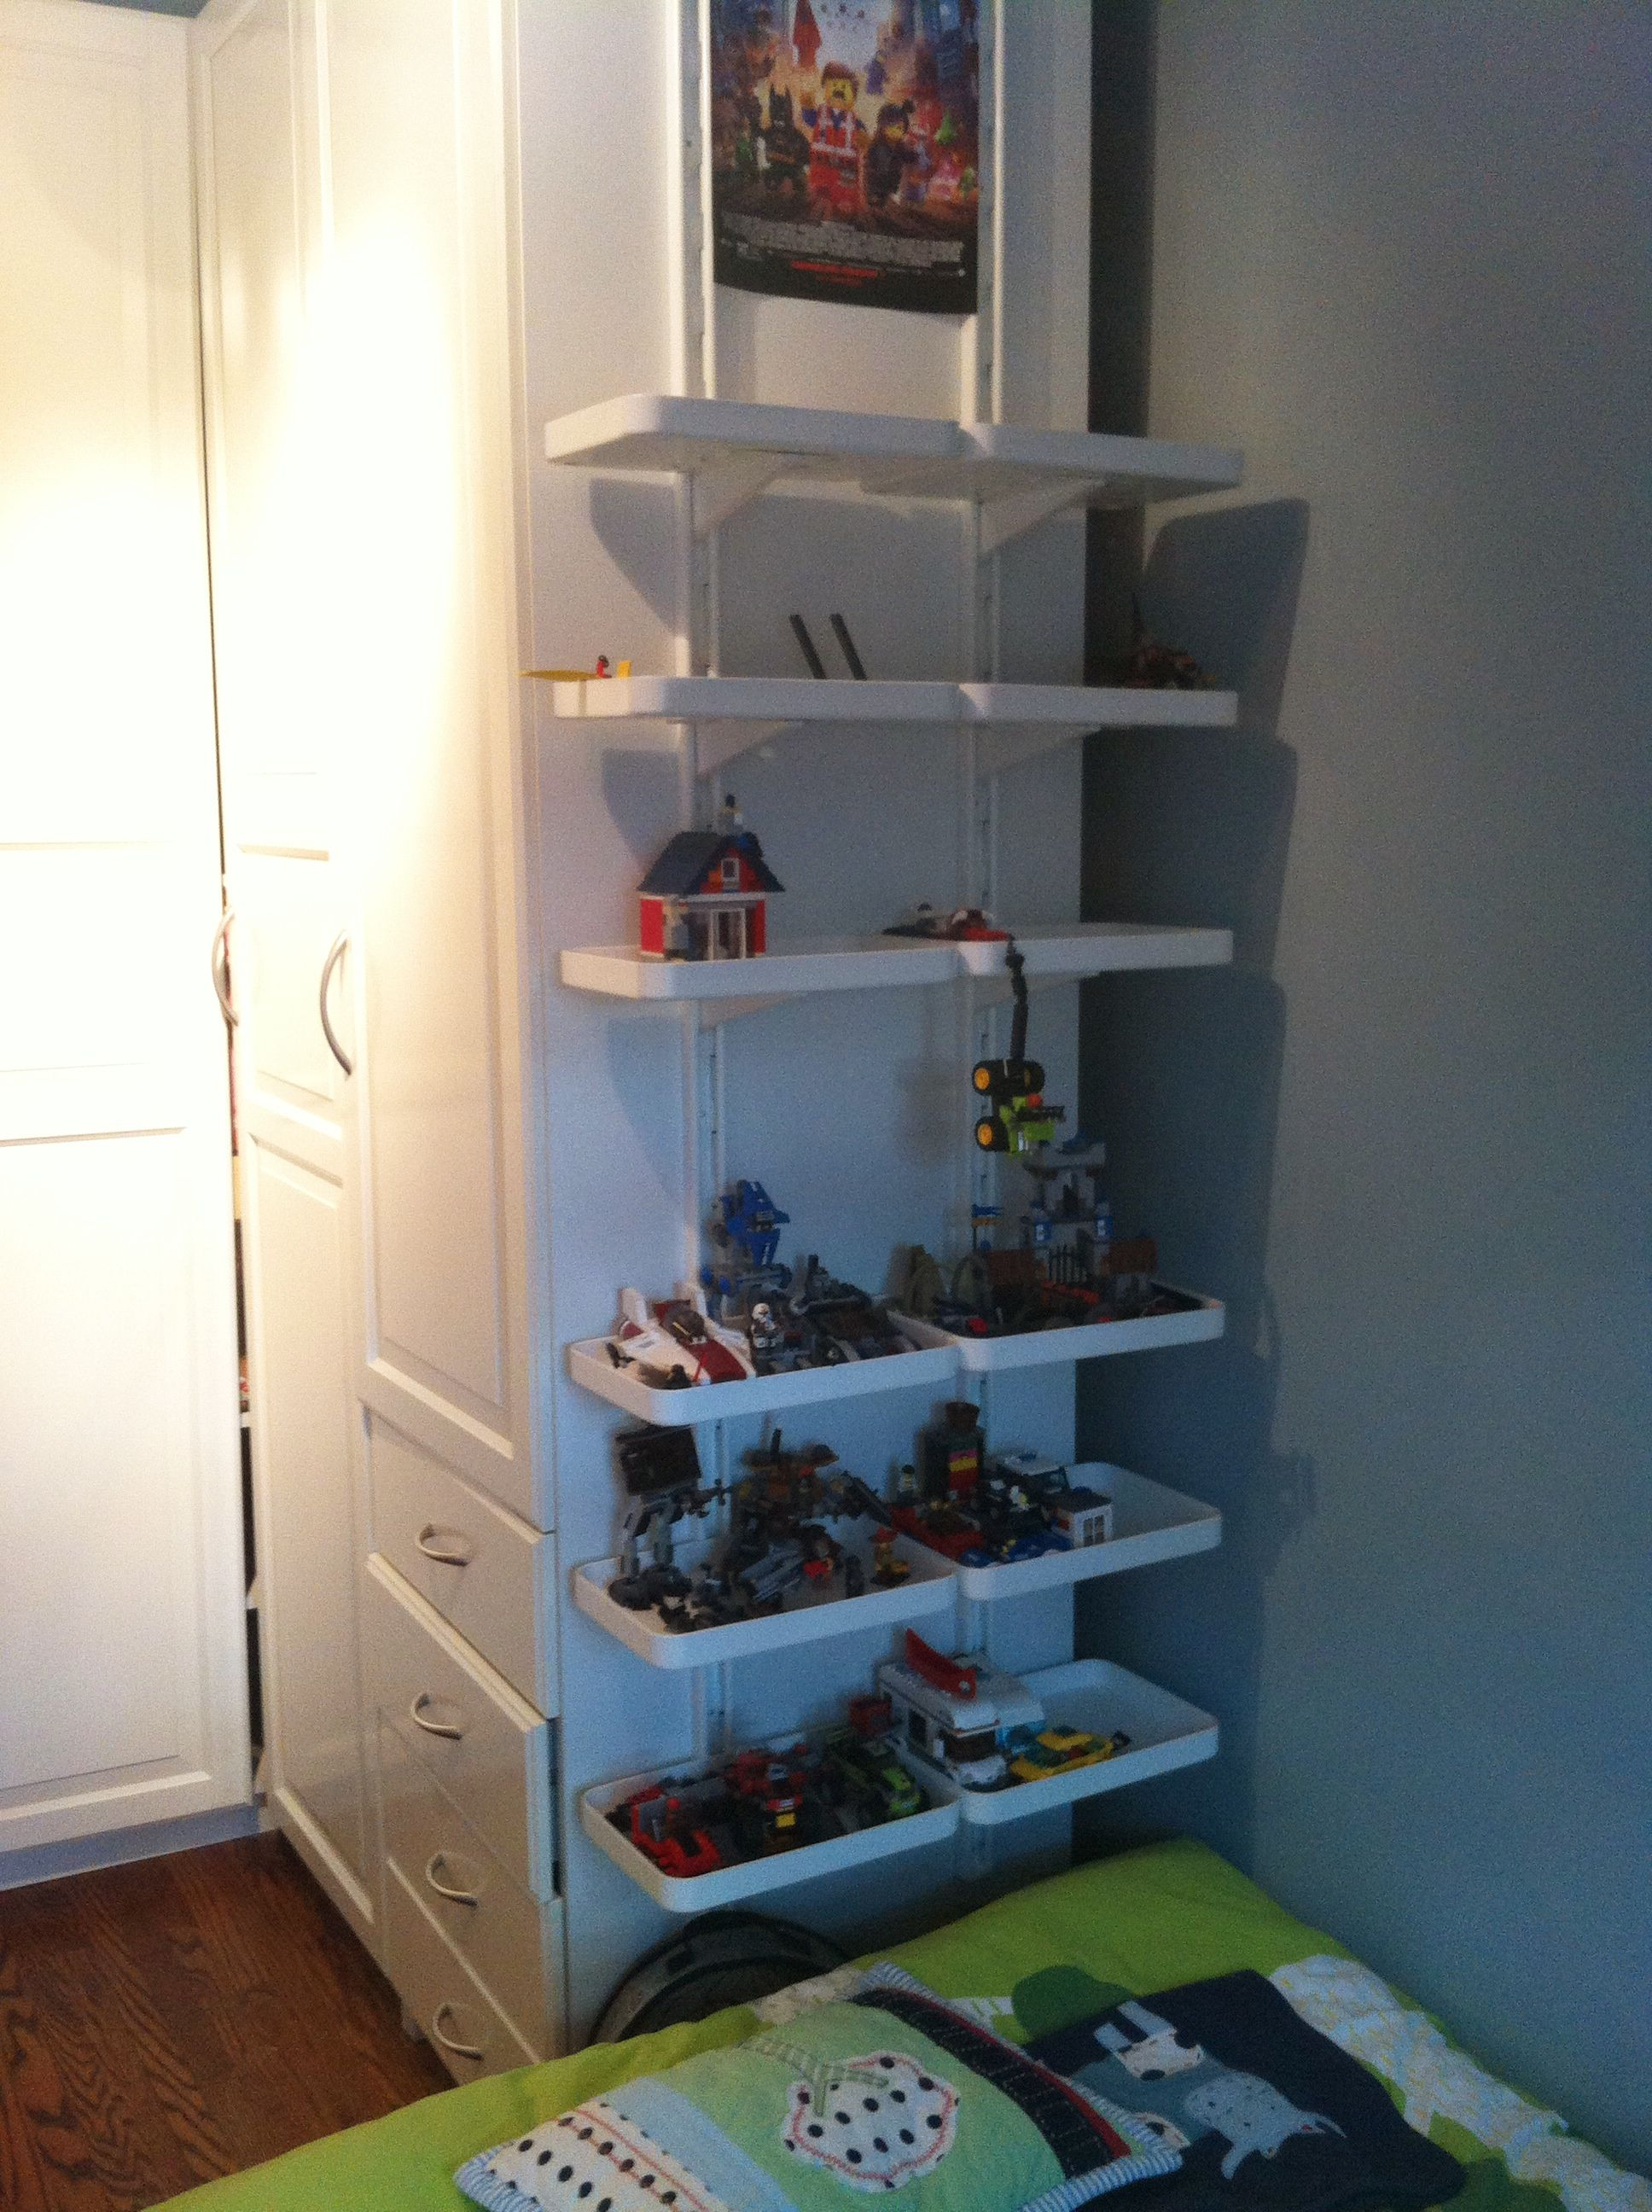 Wall Display Shelves Ideas Ikea Algot Wall Upright With Shelves As Lego Display